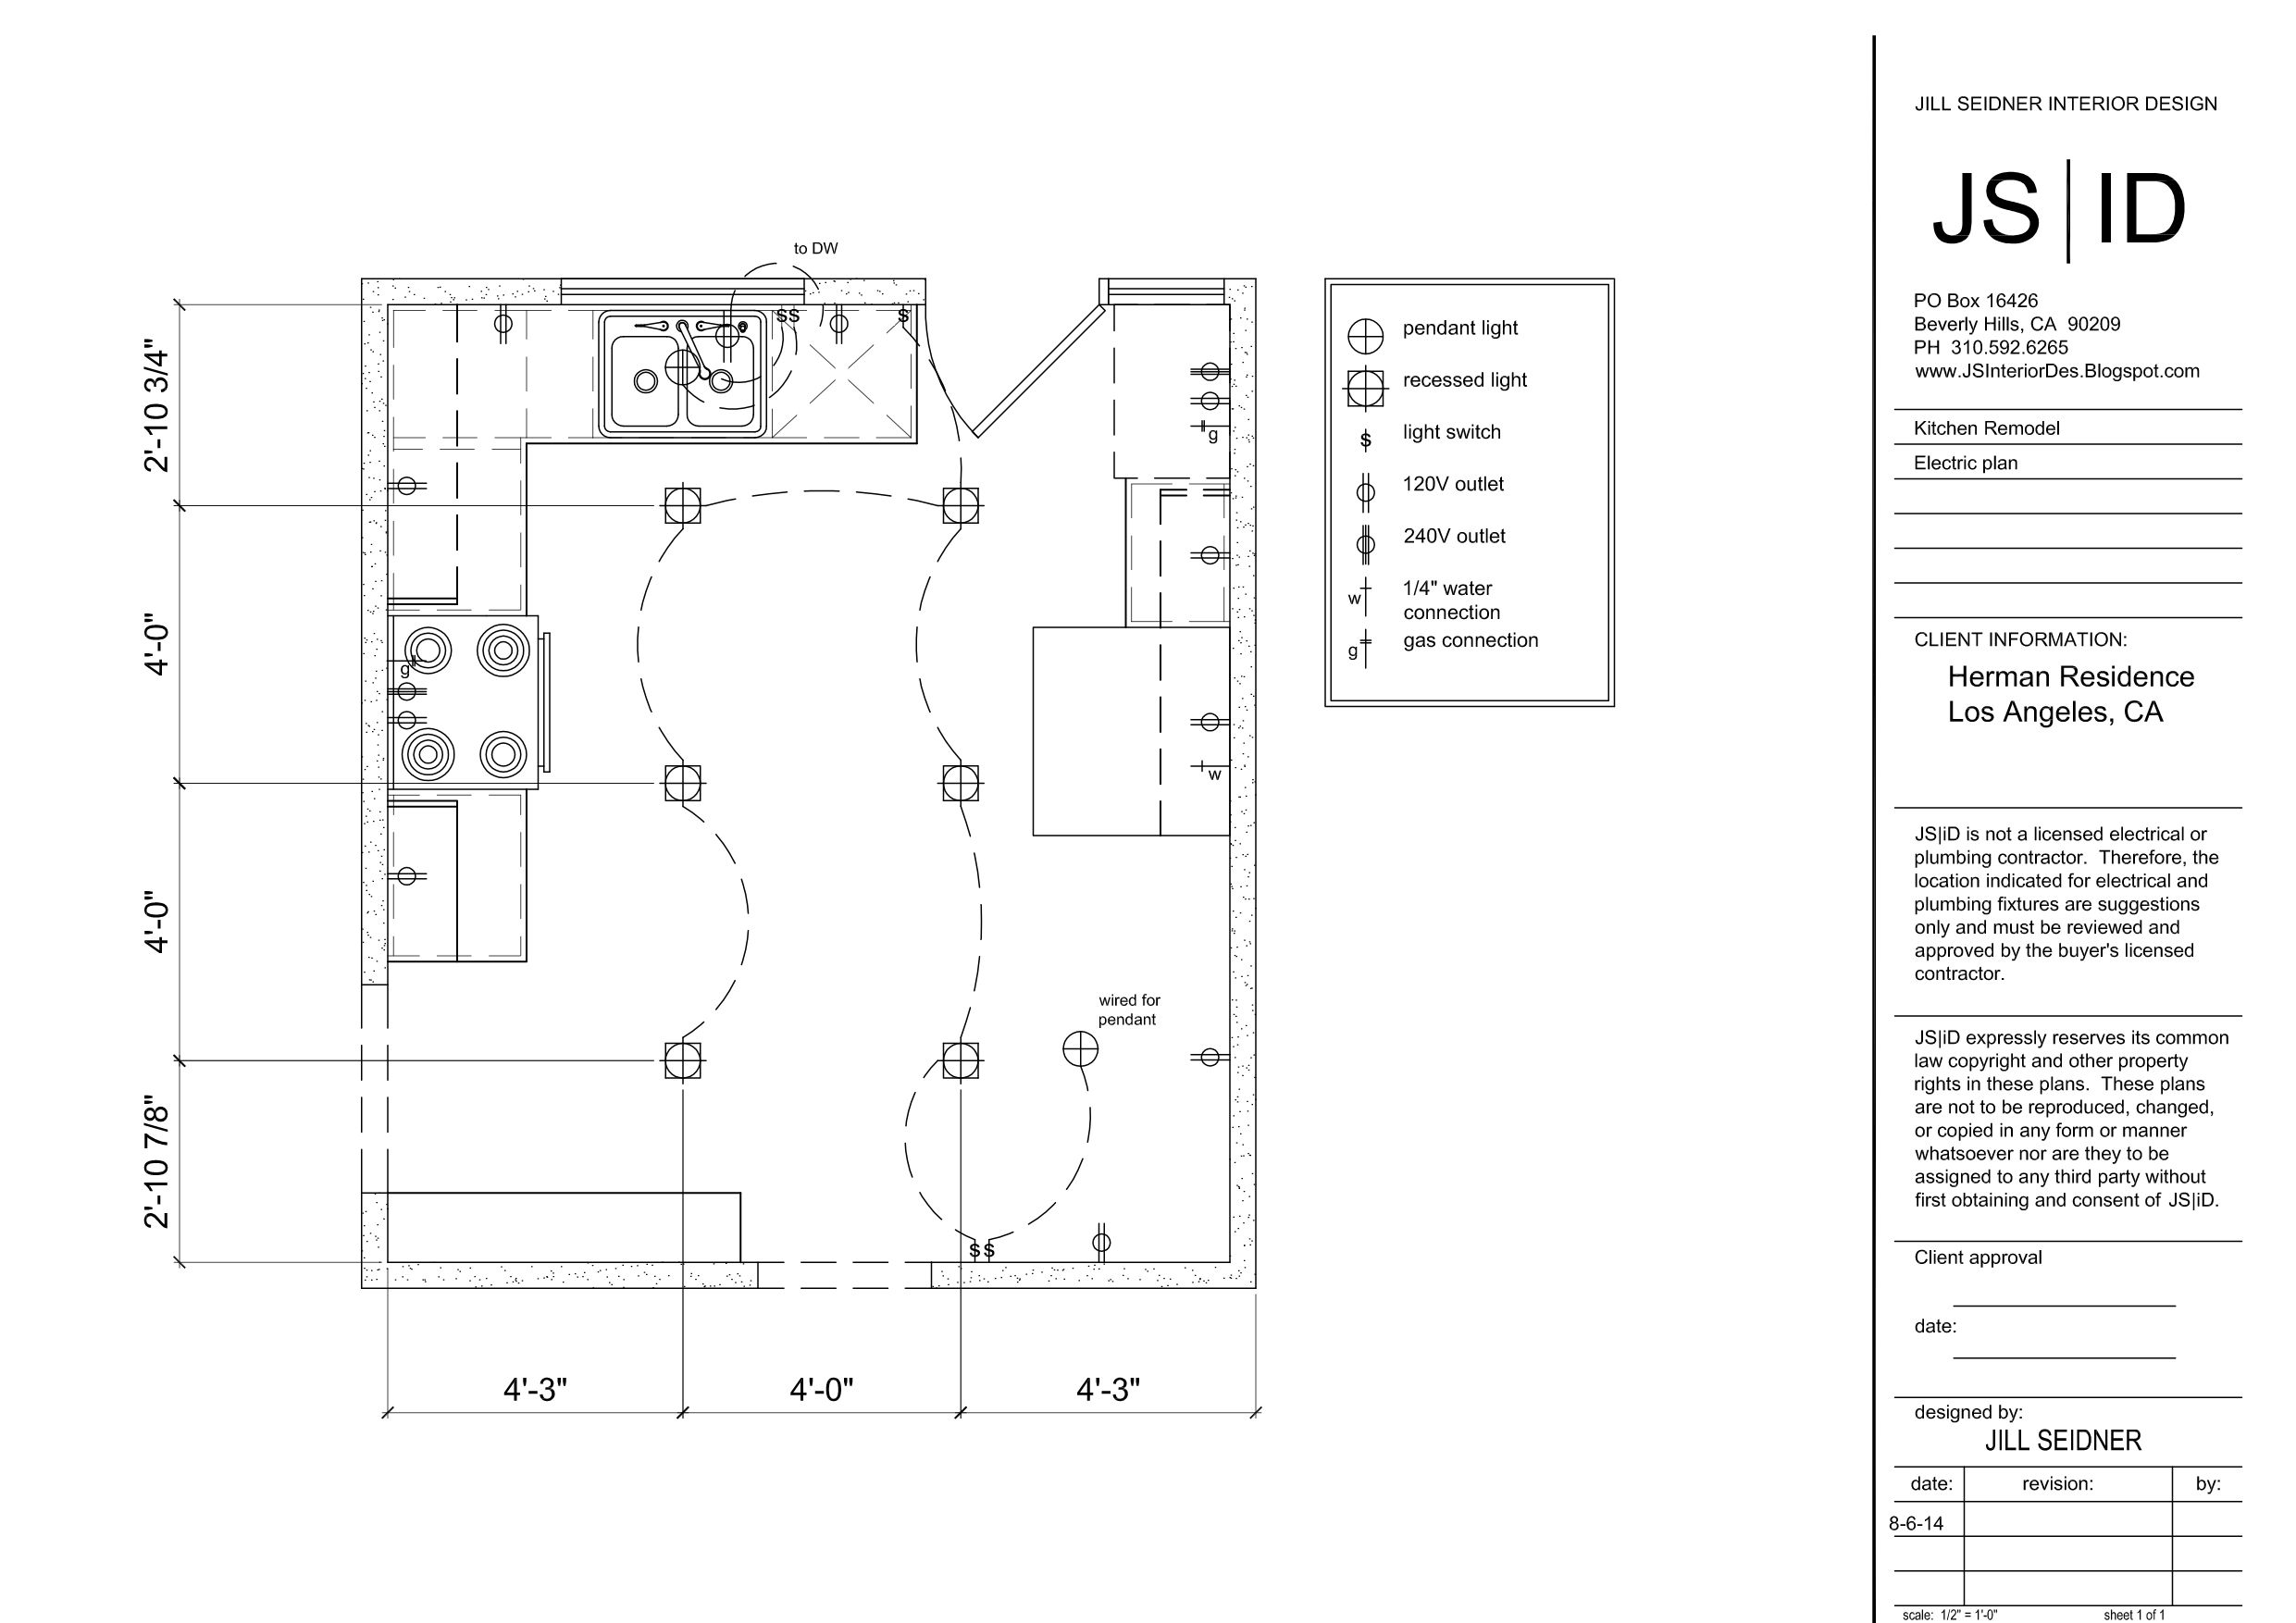 medium resolution of los angeles ca duplex kitchen remodel lighting electrical plan